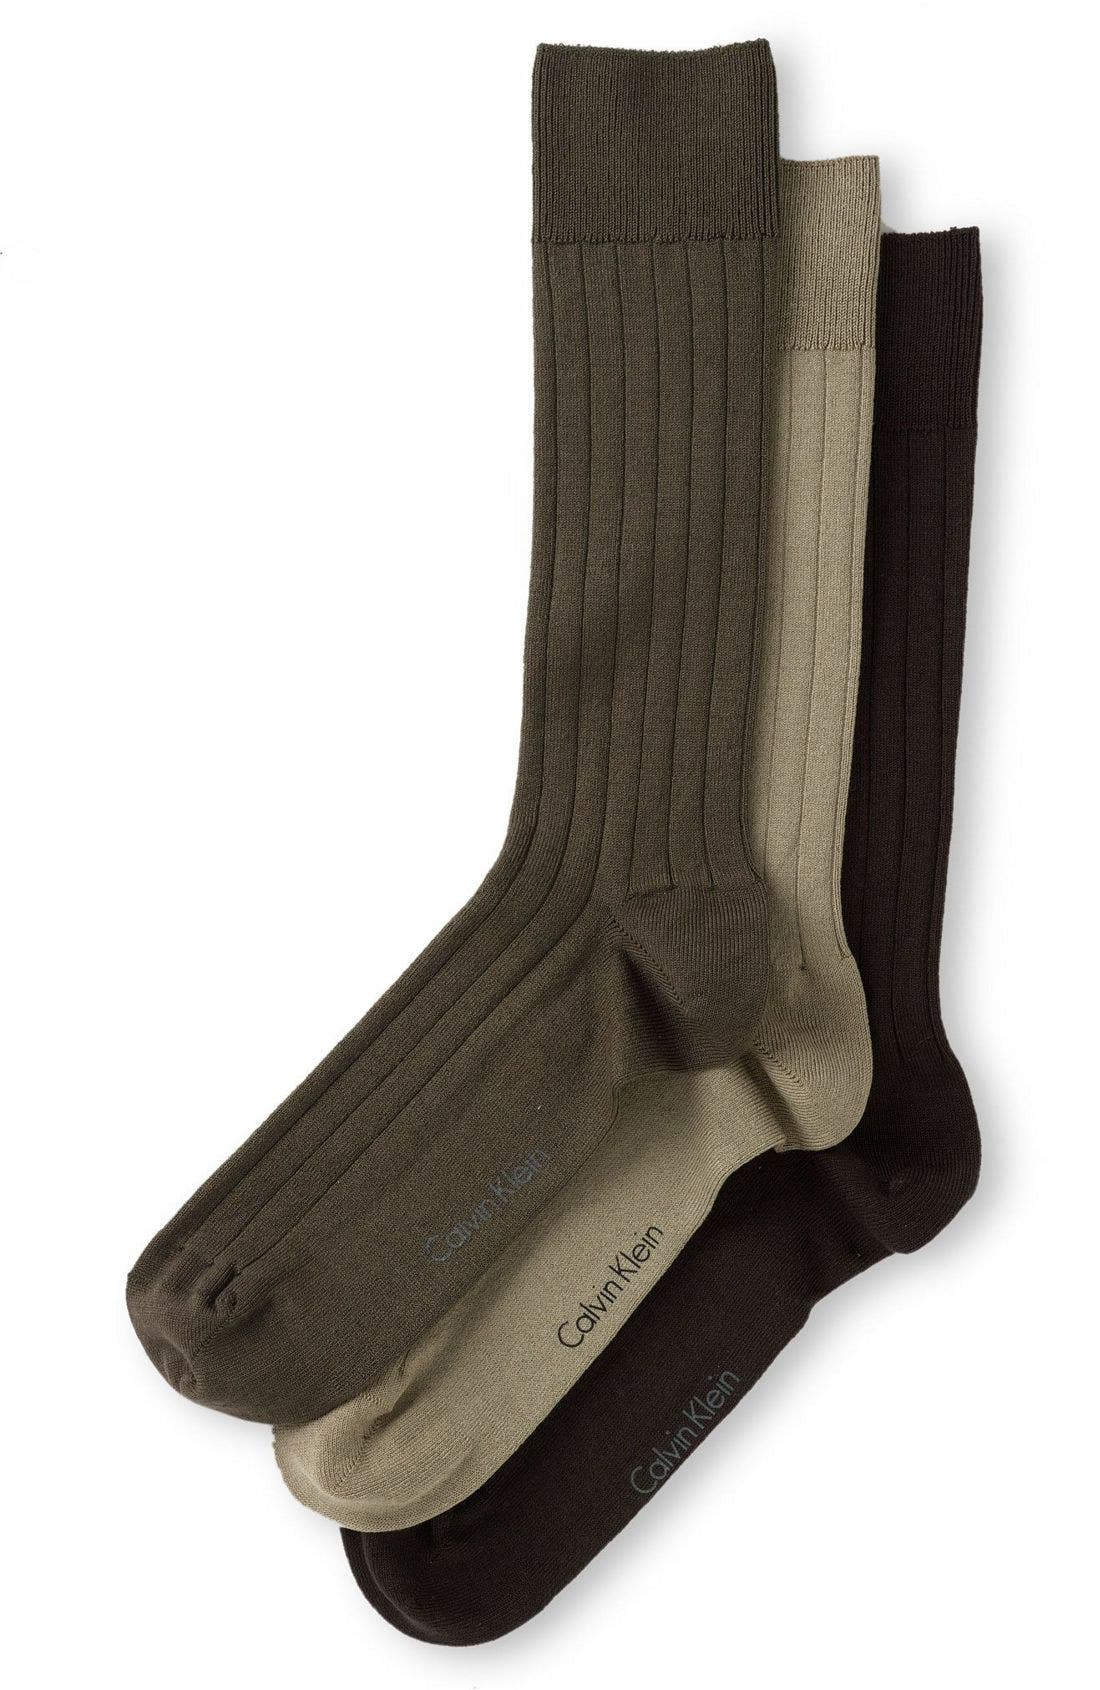 3-Pack Wide Rib Socks,                             Main thumbnail 1, color,                             CHOCOLATE MULTI